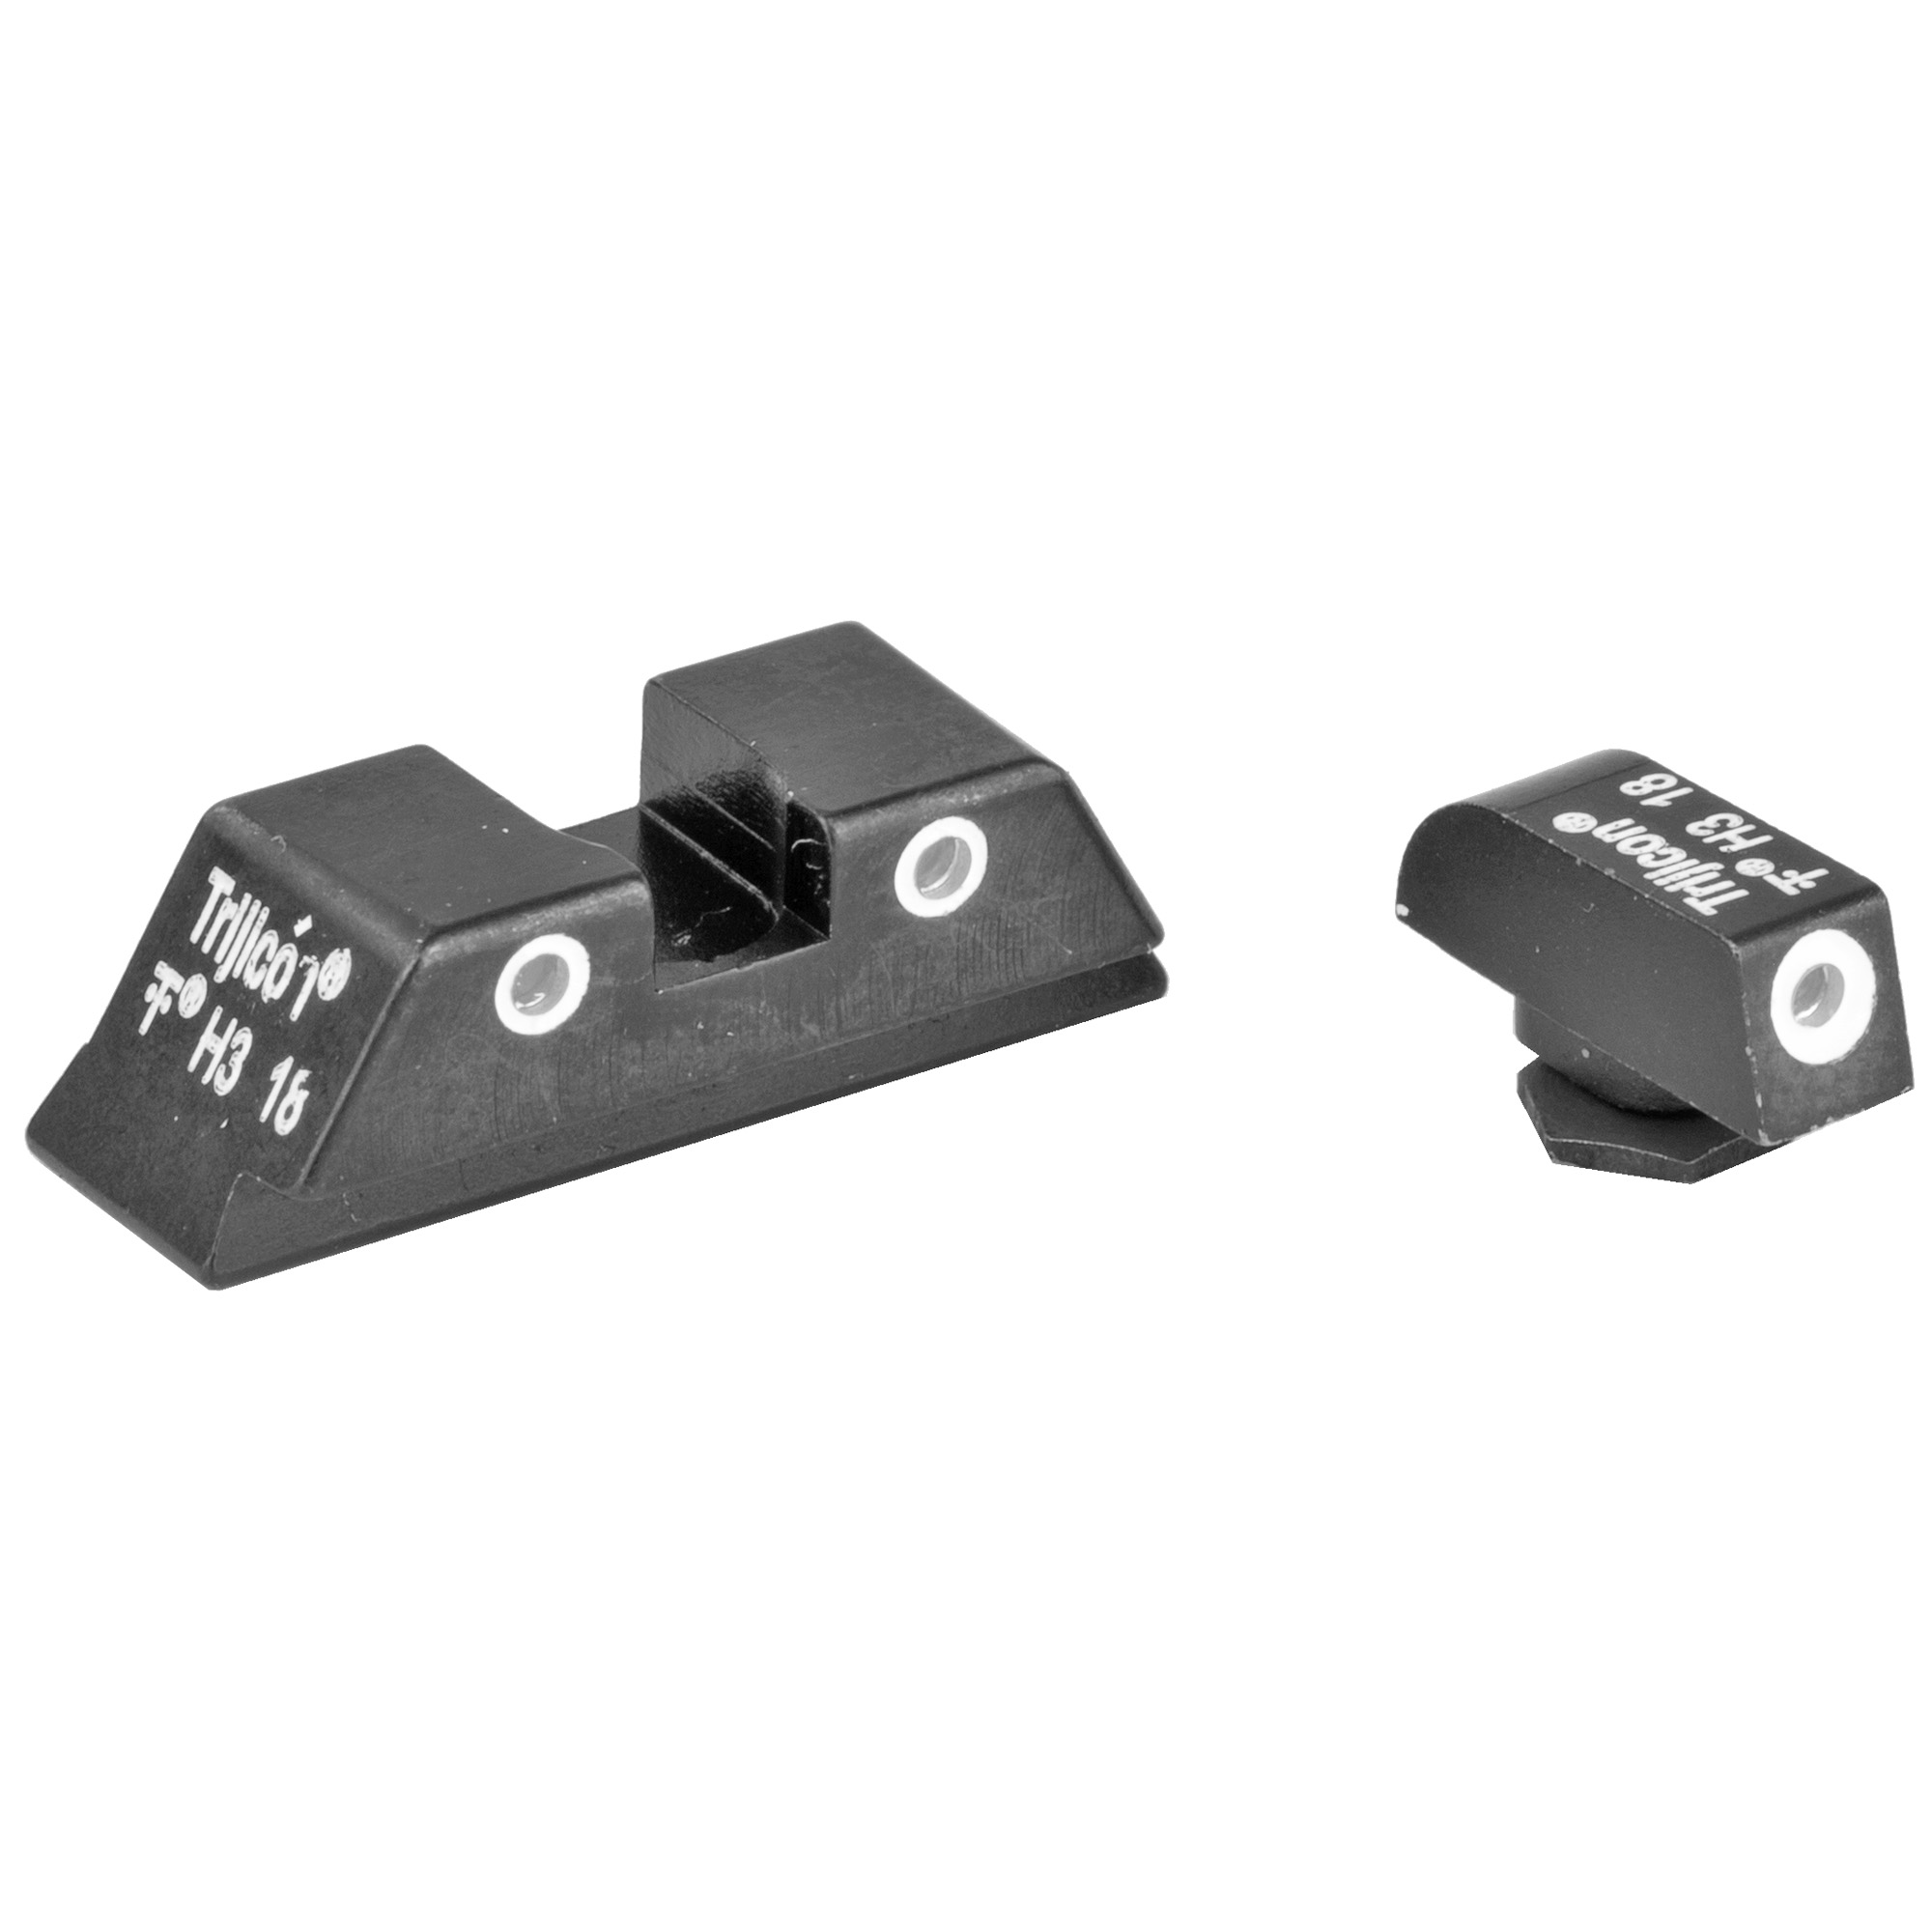 "TRIJICON NS FOR GLK 20 21: Trijicon Bright & Tough Night Sights are three-dot iron sights that increase night-fire shooting accuracy by as much as five times over conventional sights. Equally impressive"" they do so with the same speed as instinctive shooting - and without the need for batteries."